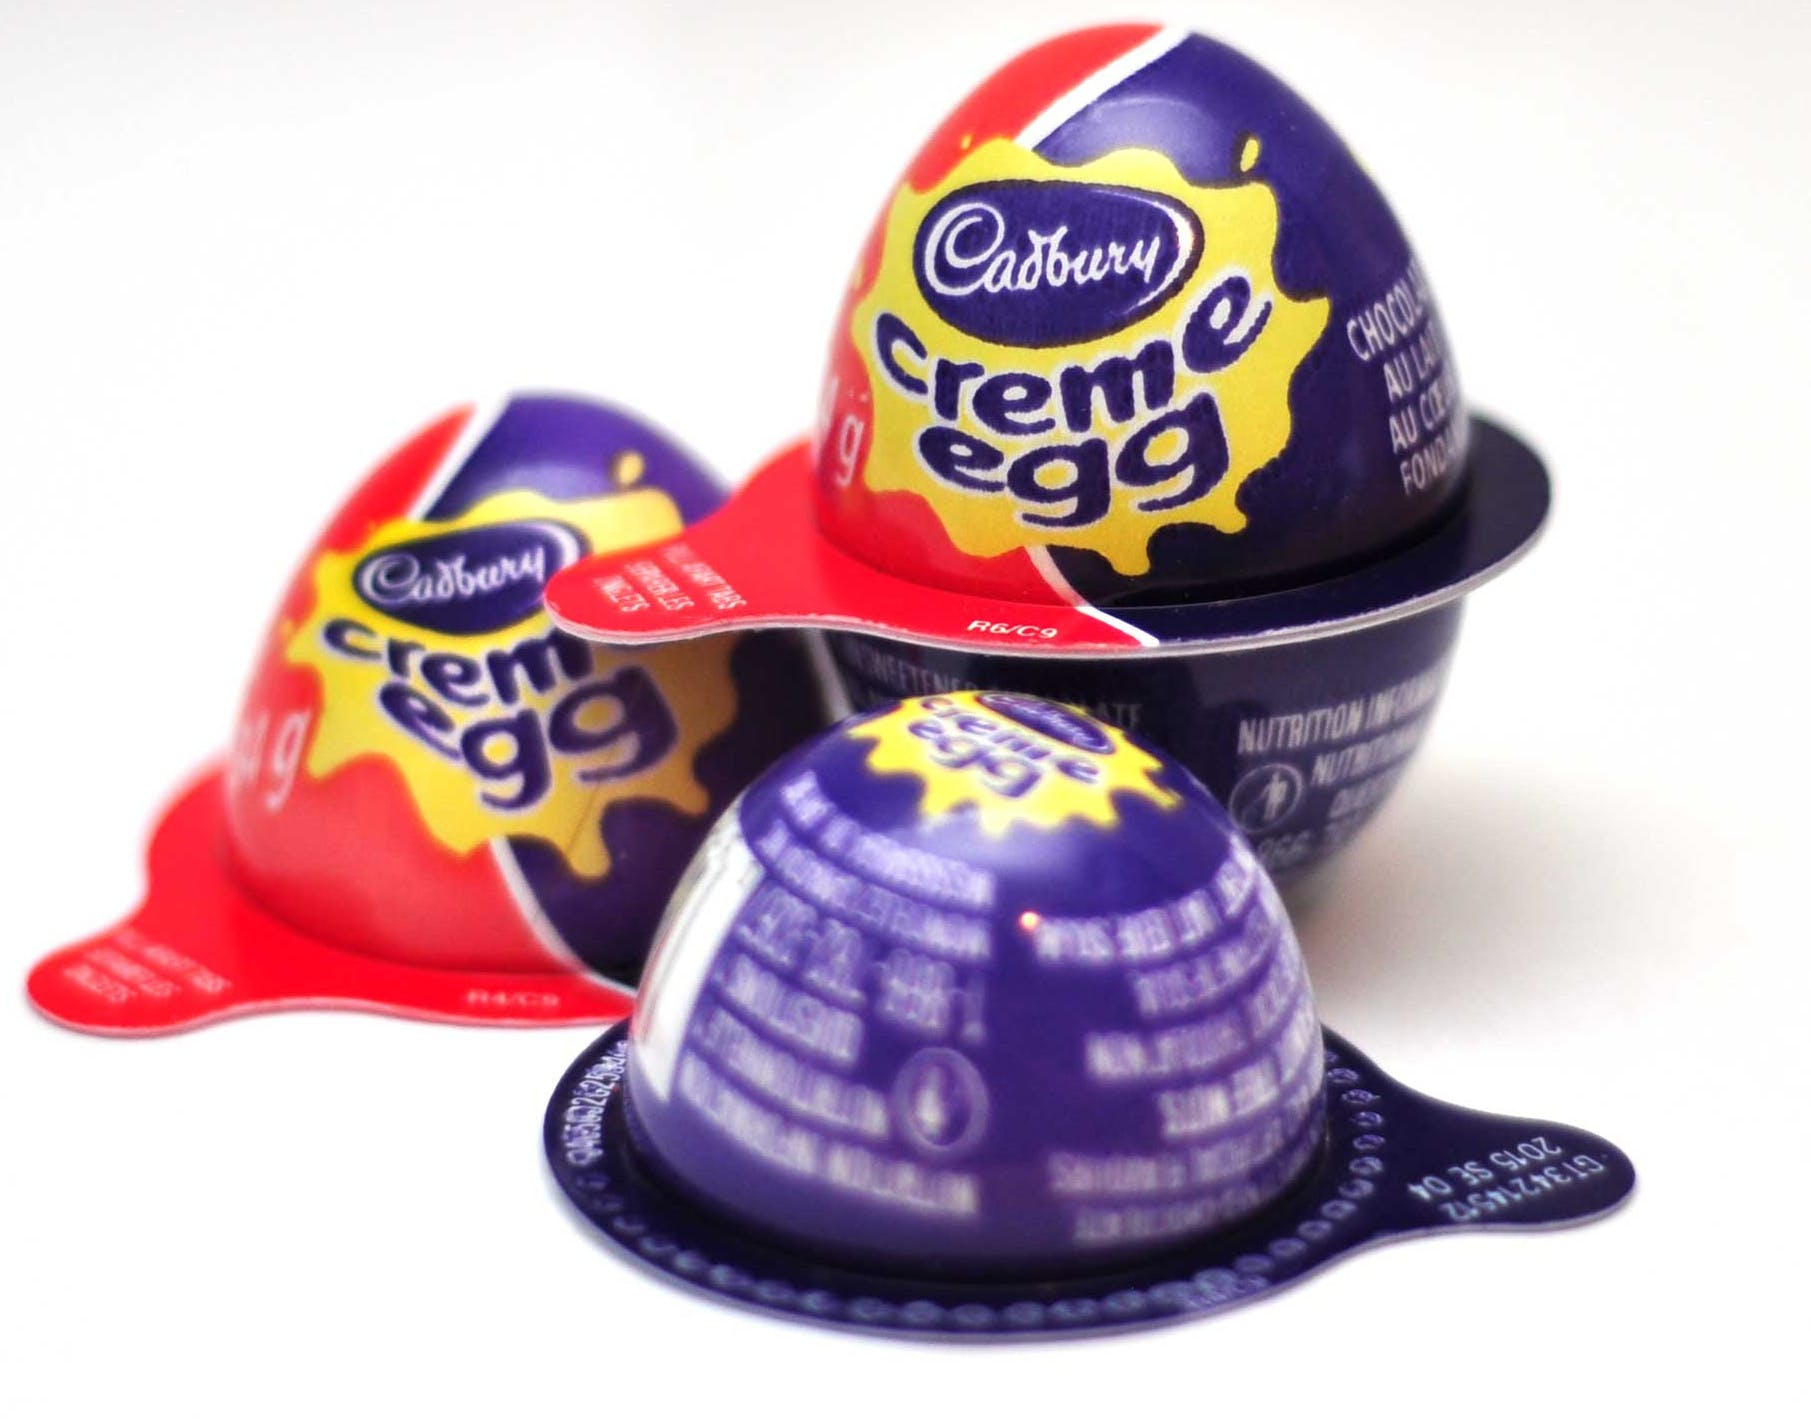 Creme_Egg_new_packaging_(Canada)